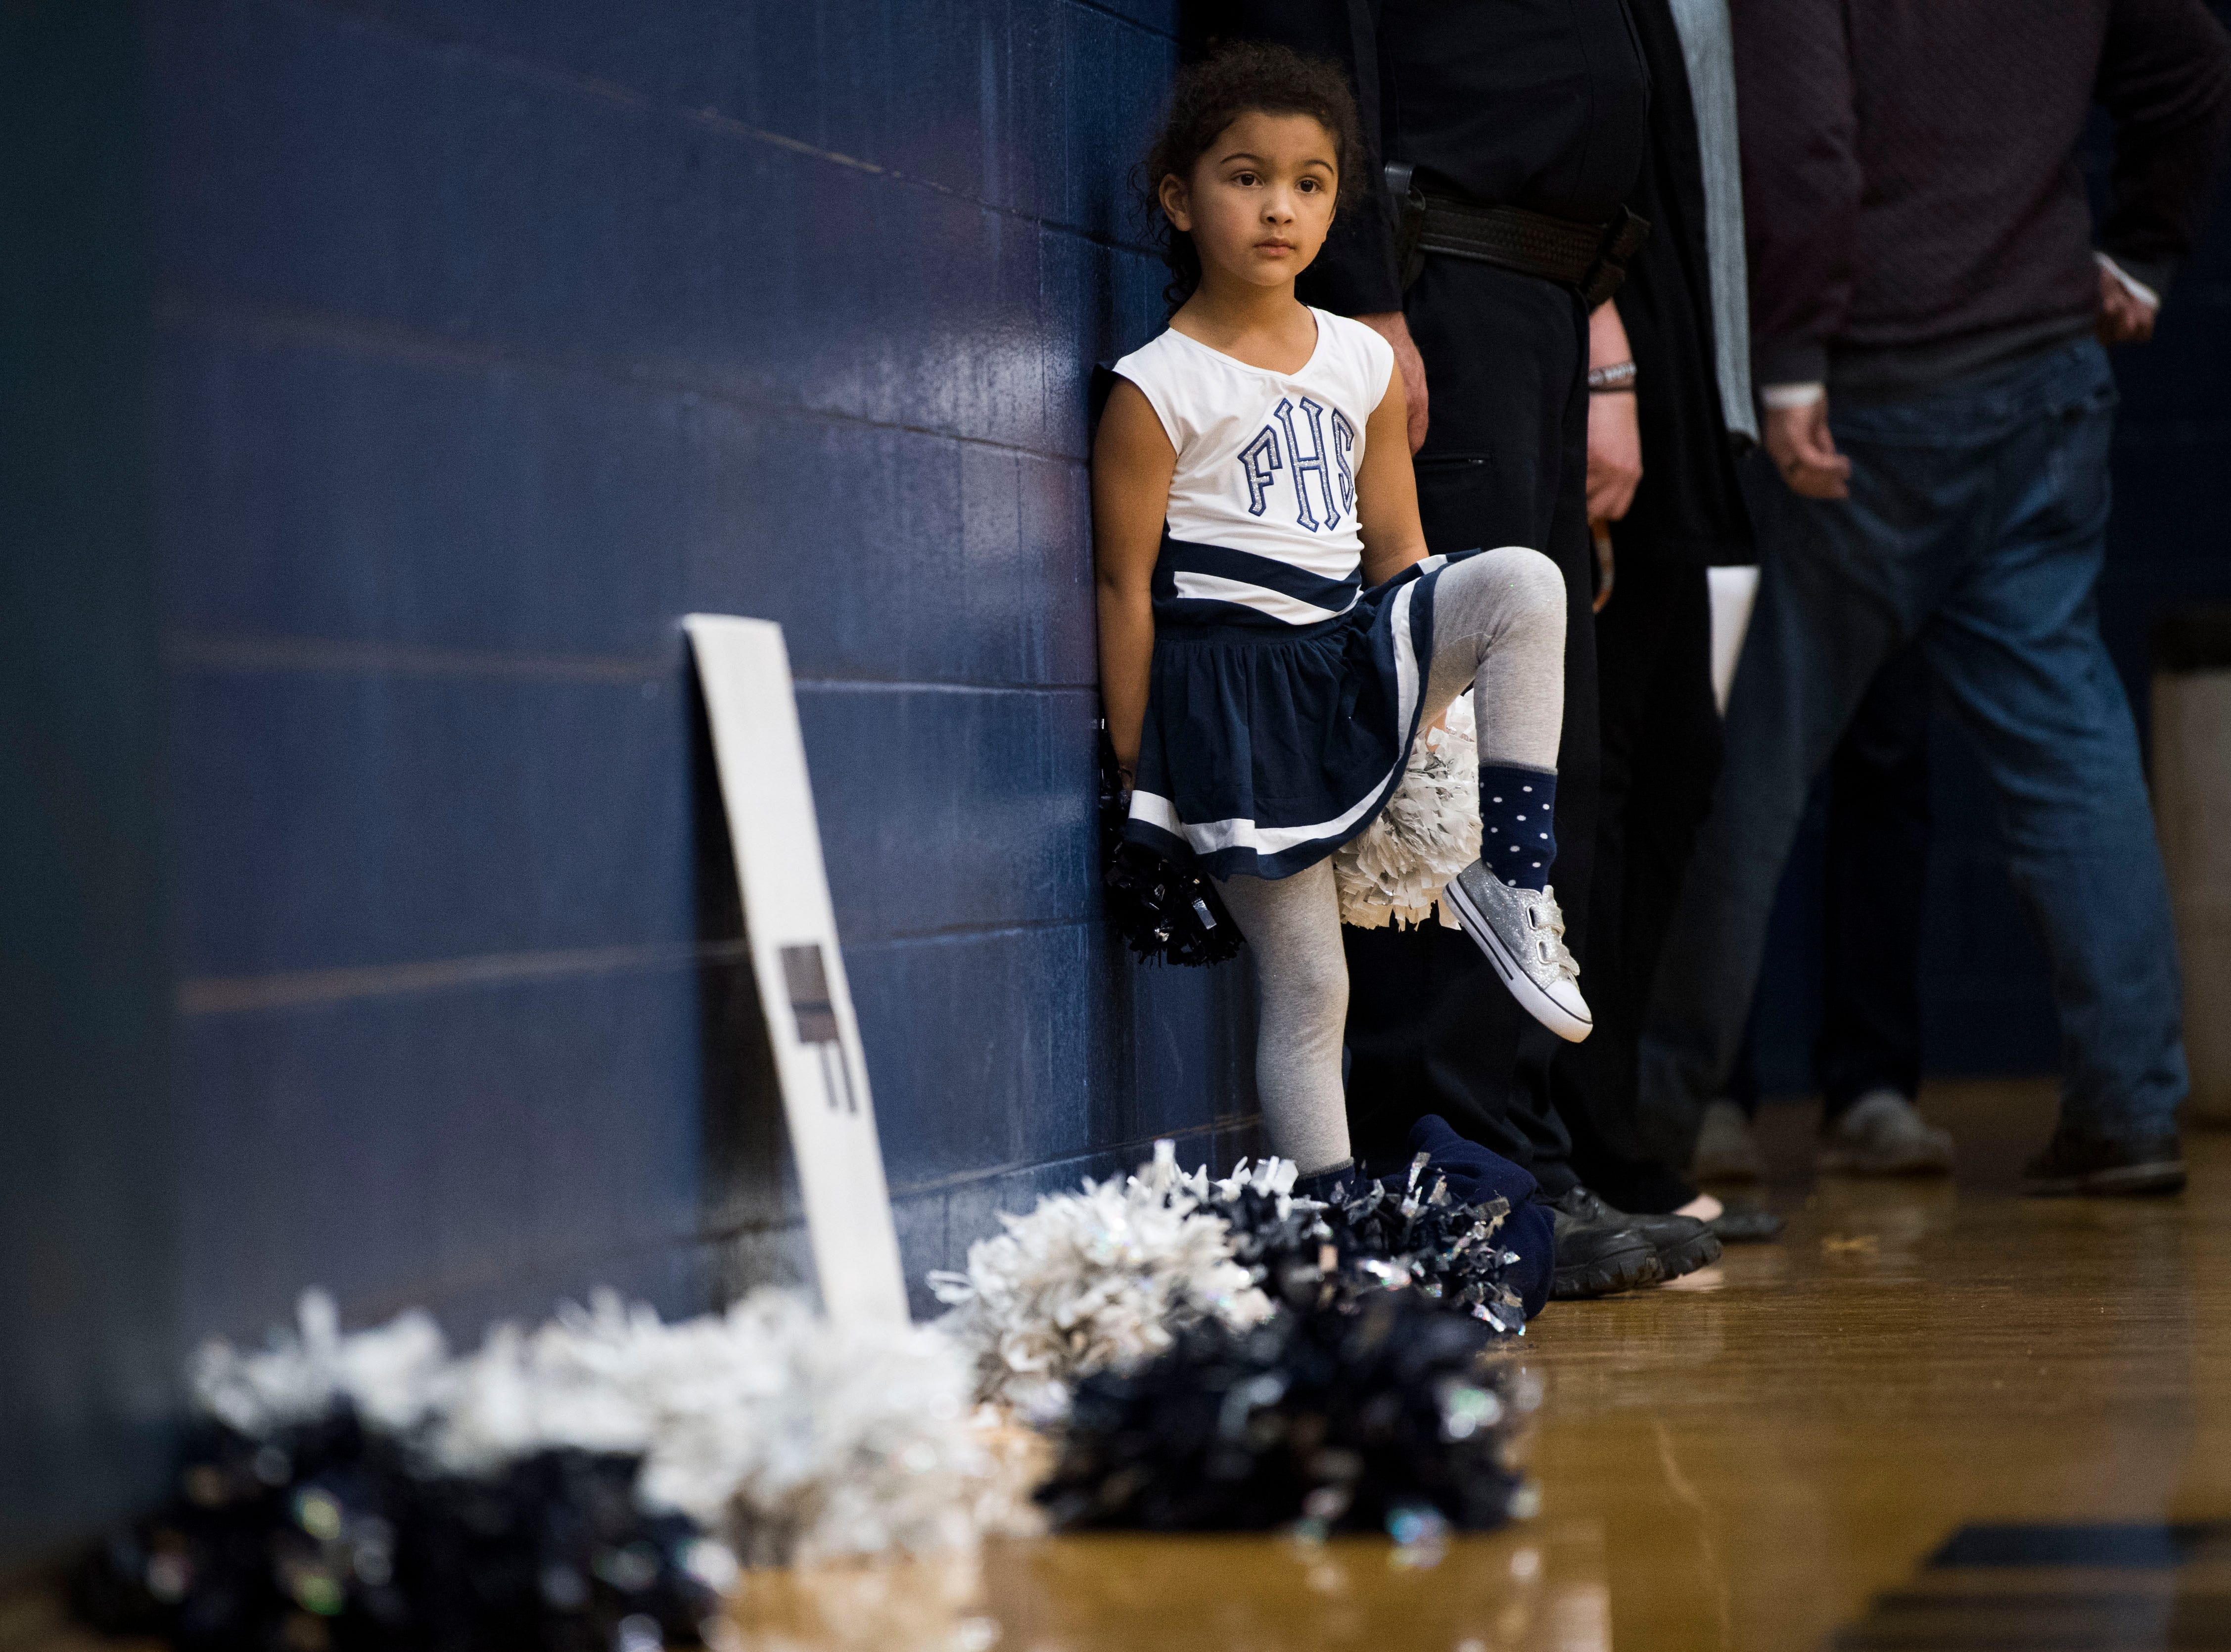 Baylor Higgins, 5, daughter of Farragut head coach Jon Higgins, watches the game during a high school basketball game between Maryville and Farragut at Farragut, Friday, Jan. 11, 2019.